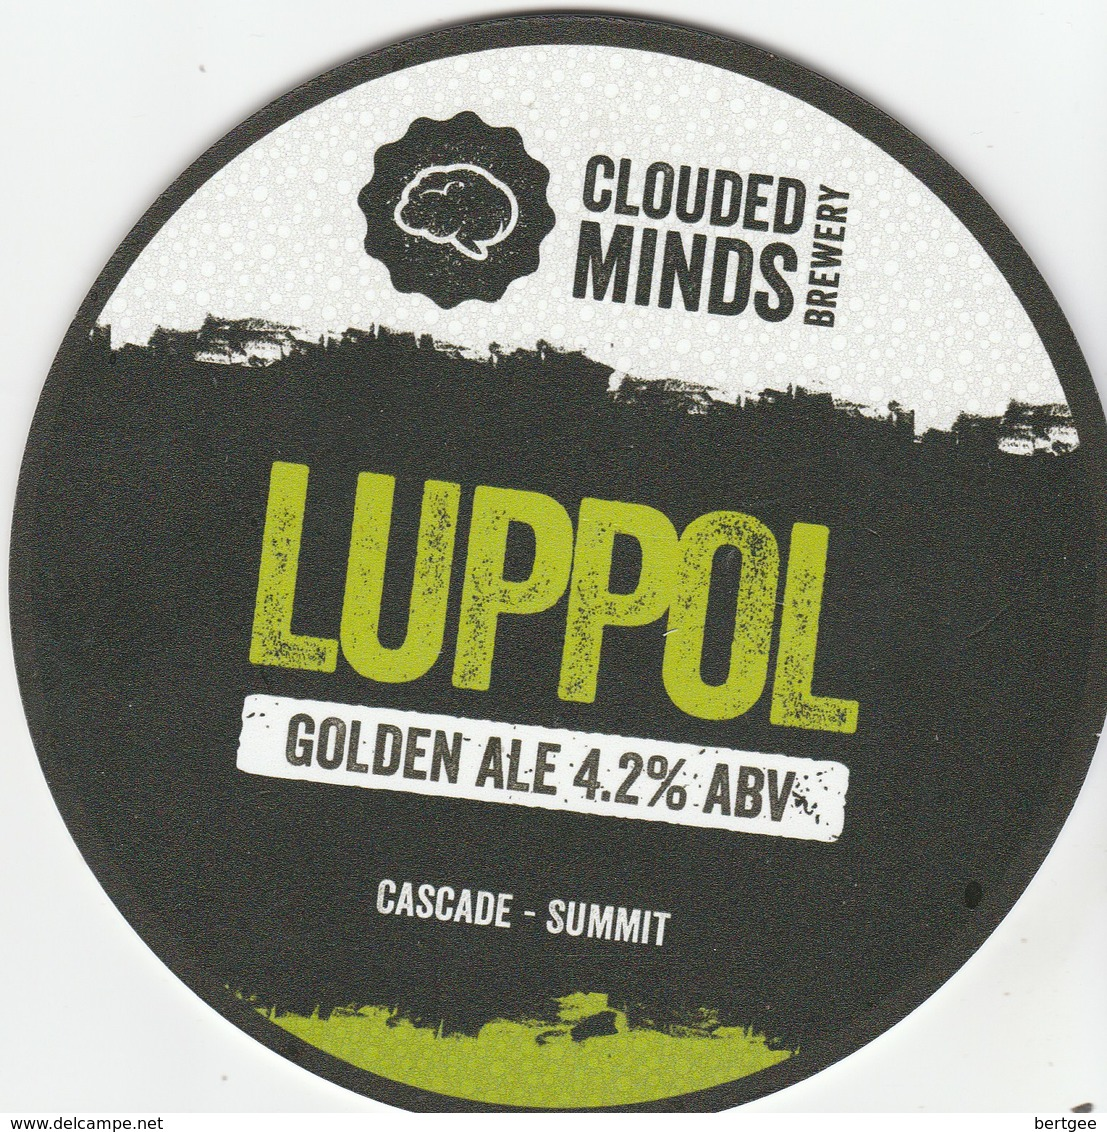 COOUDED MINDS BREWERY  (LOWER BRAILES, ENGLAND) - LUPPOL GOLDEN ALE - PUMP CLIP FRONT - Letreros